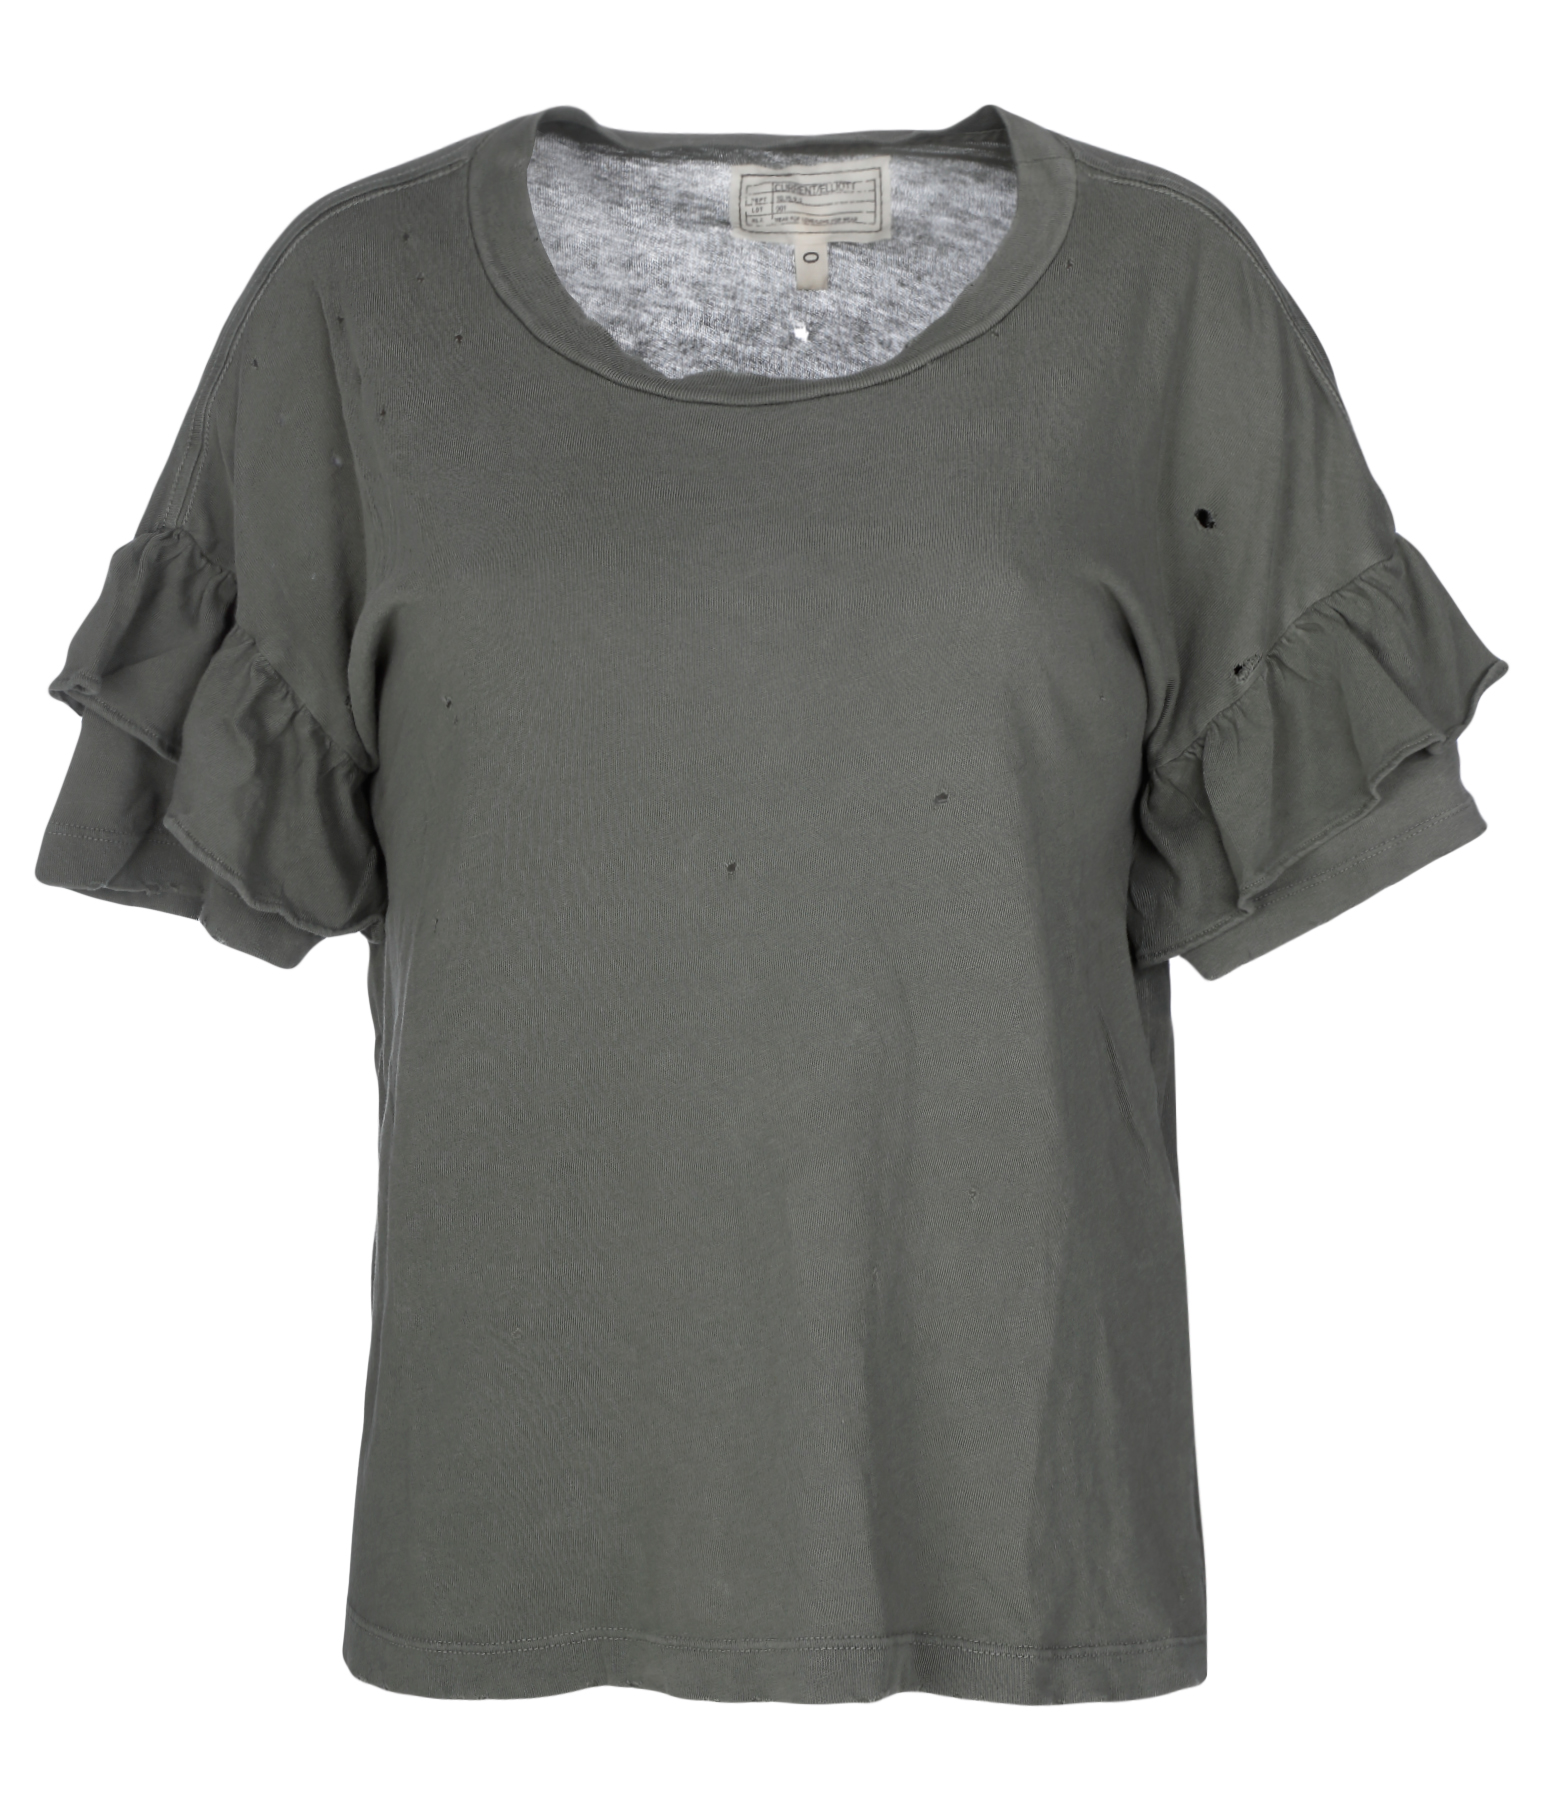 Tee-shirt The Ruffle Coton Dusty Olive Destroy